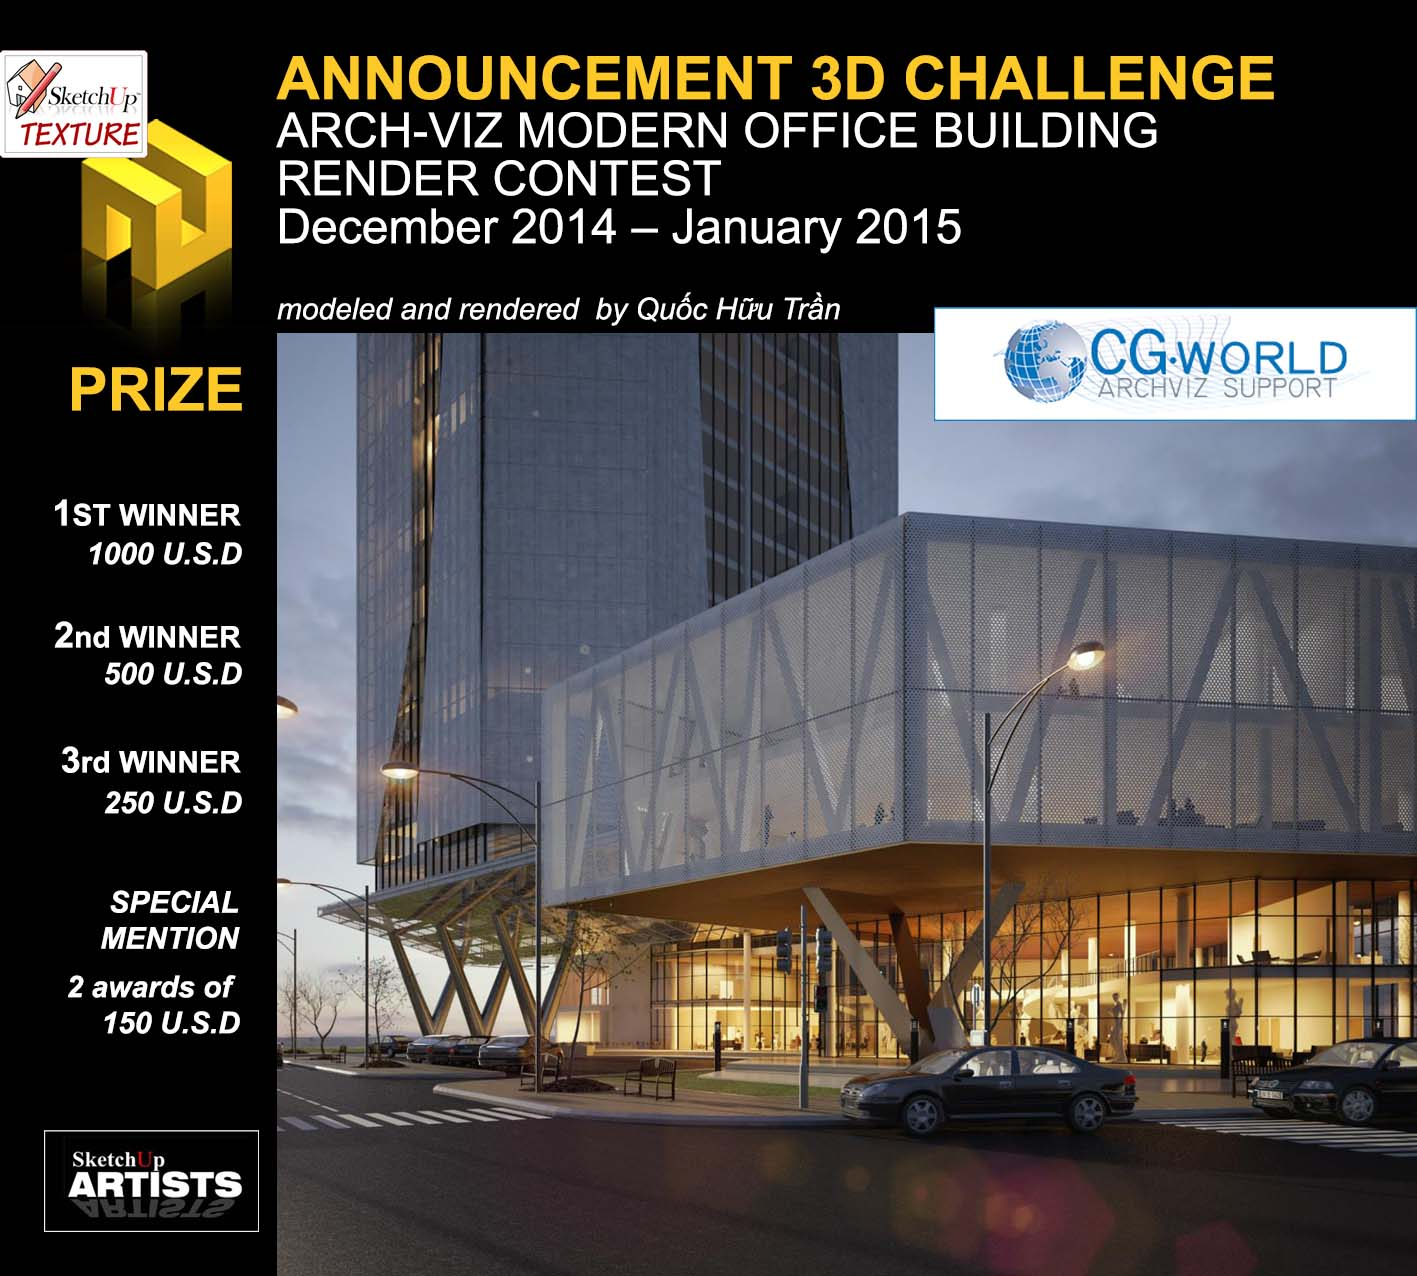 3D Challenge Arch-viz Modern Office Building international render contest